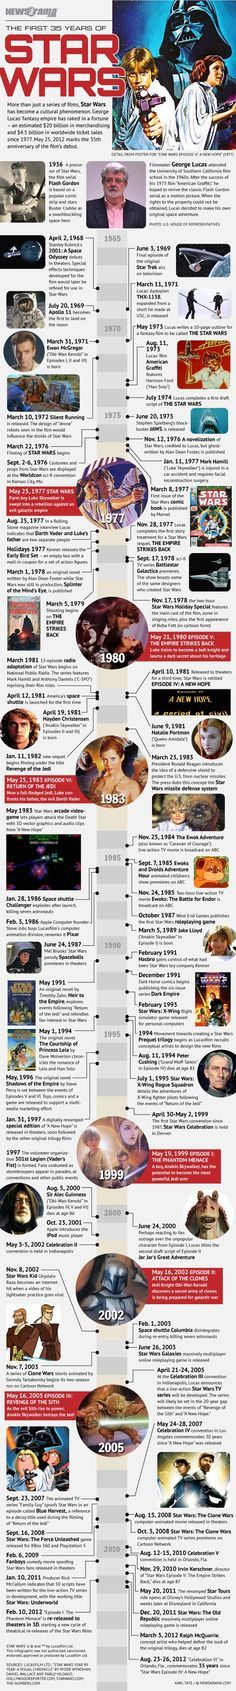 Star Wars 35th Anniversary Timeline Infographic